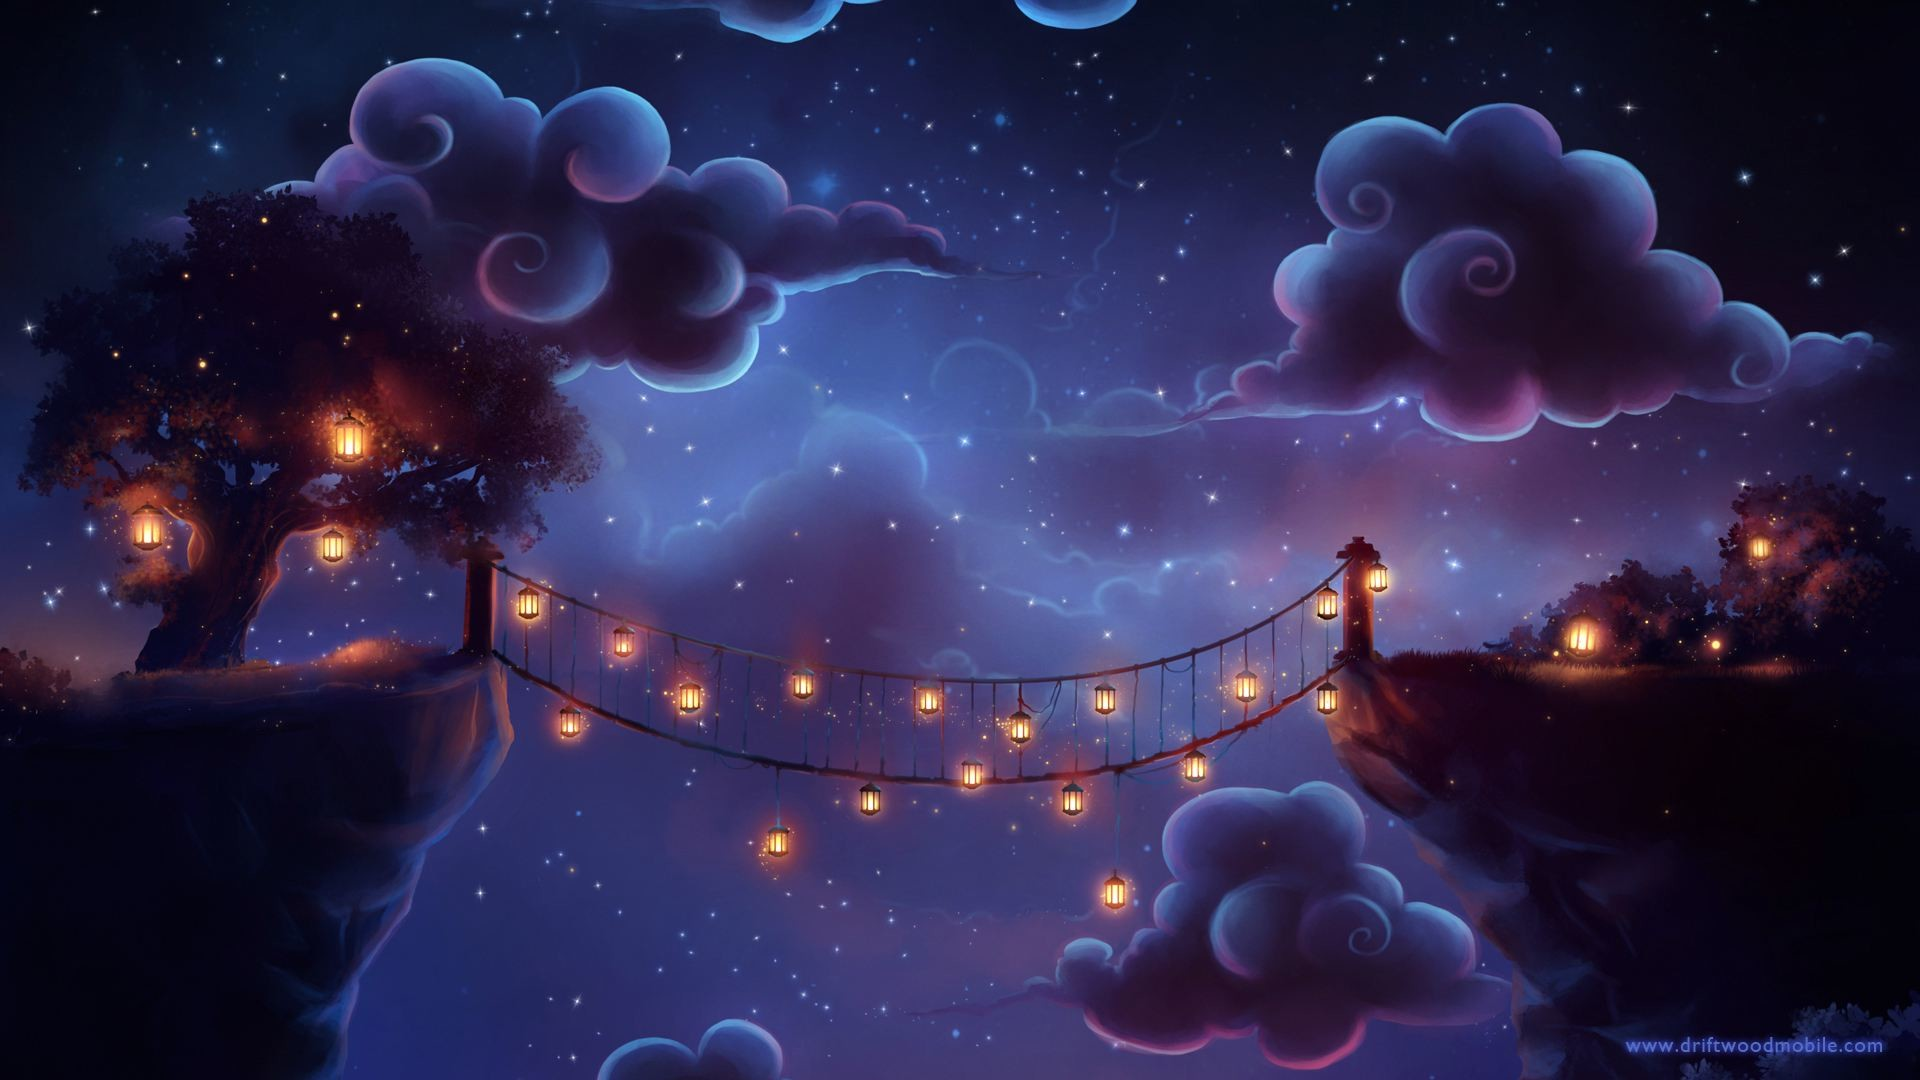 1920x1080 An illustrated wallpaper with a lighted bridge